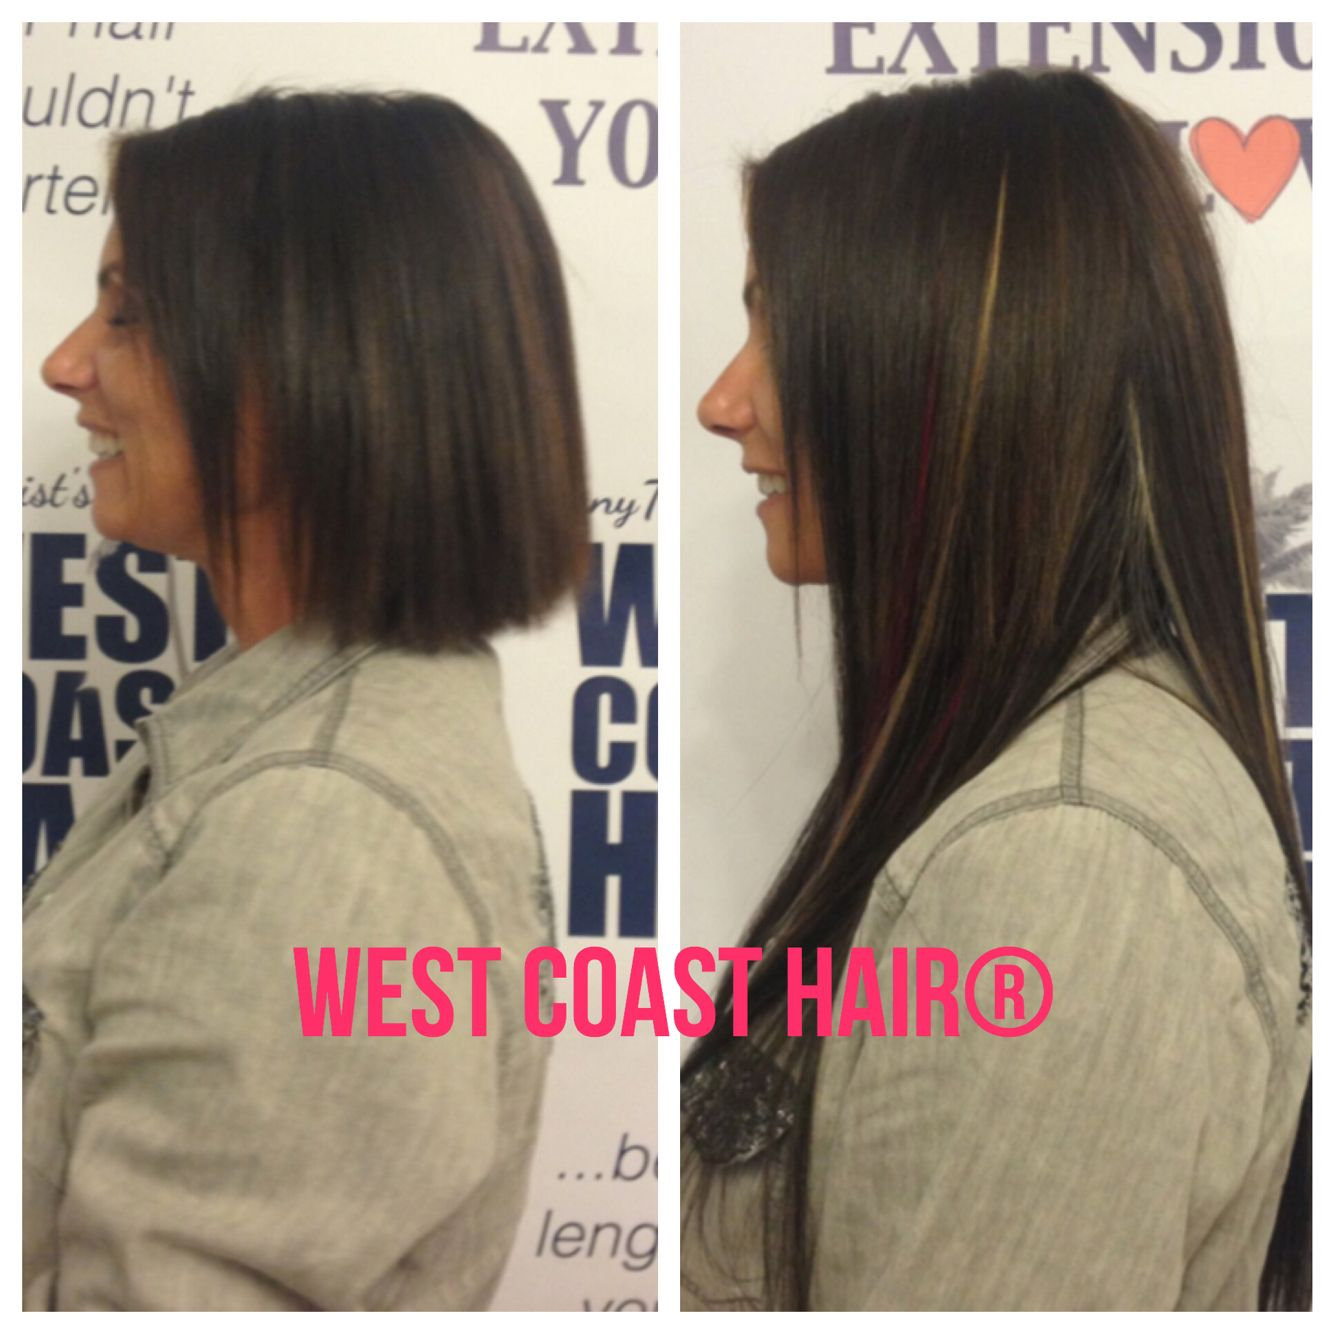 WEST COAST HAIR® before and after #hairextensions Set up an appointment today and get safe, natural hair extensions! www.westcoasthair.com